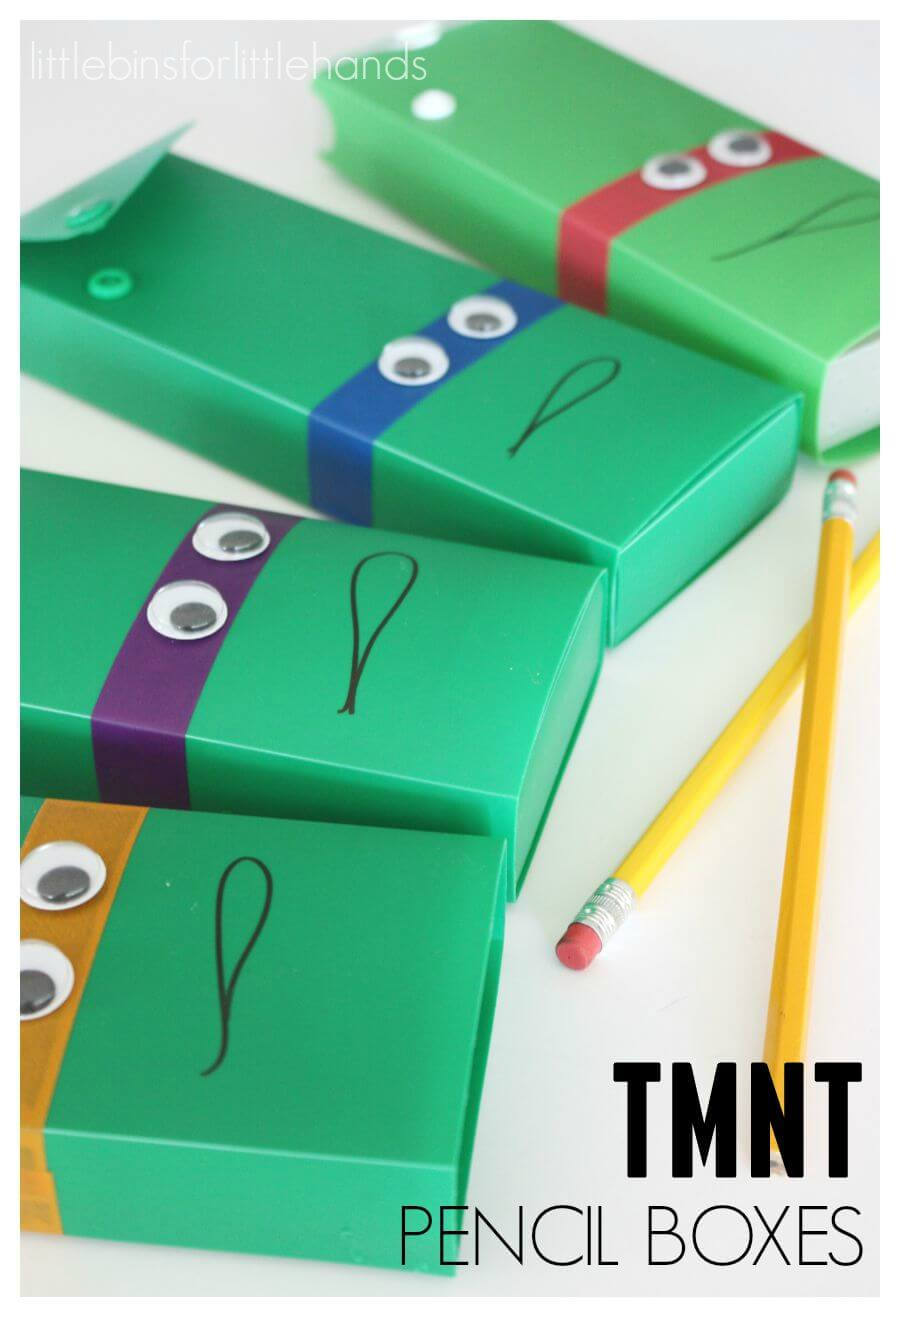 Teenage Mutant Ninja Turtle Pencil Boxes Cases Back To School TMNT Activity